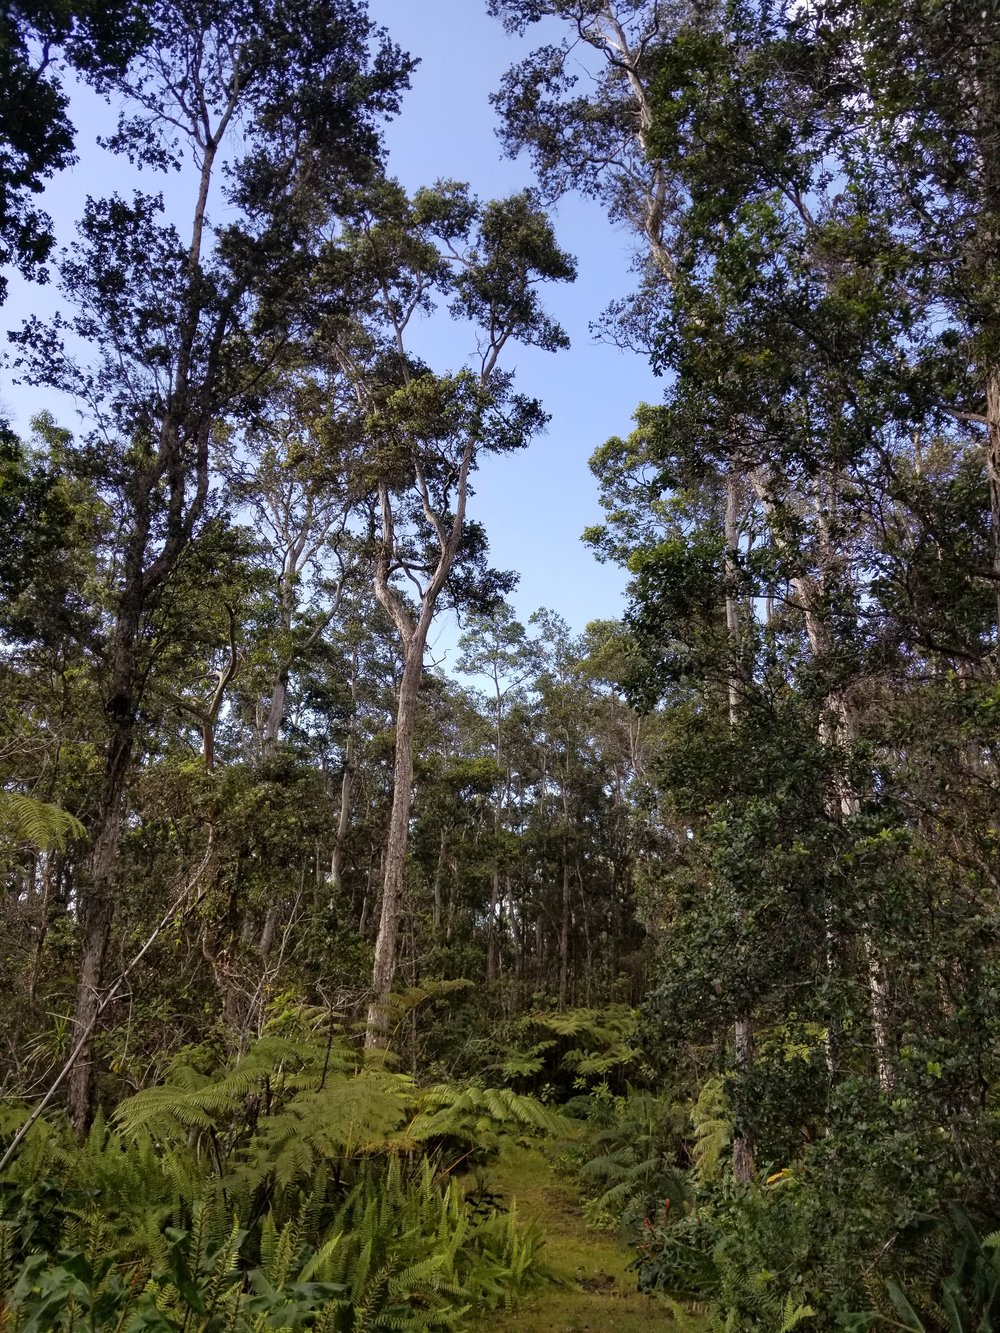 Kona cloud forest, Kaloko, Hawaii